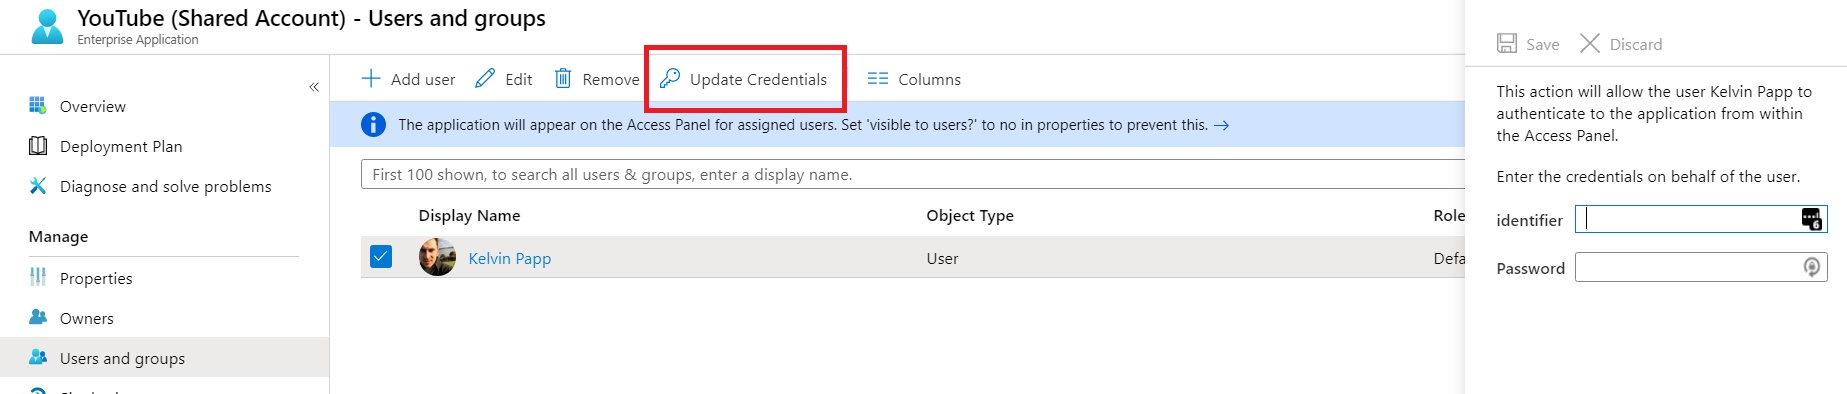 Setting the credentials that will be provided to YouTube when the user accesses the Azure AD application